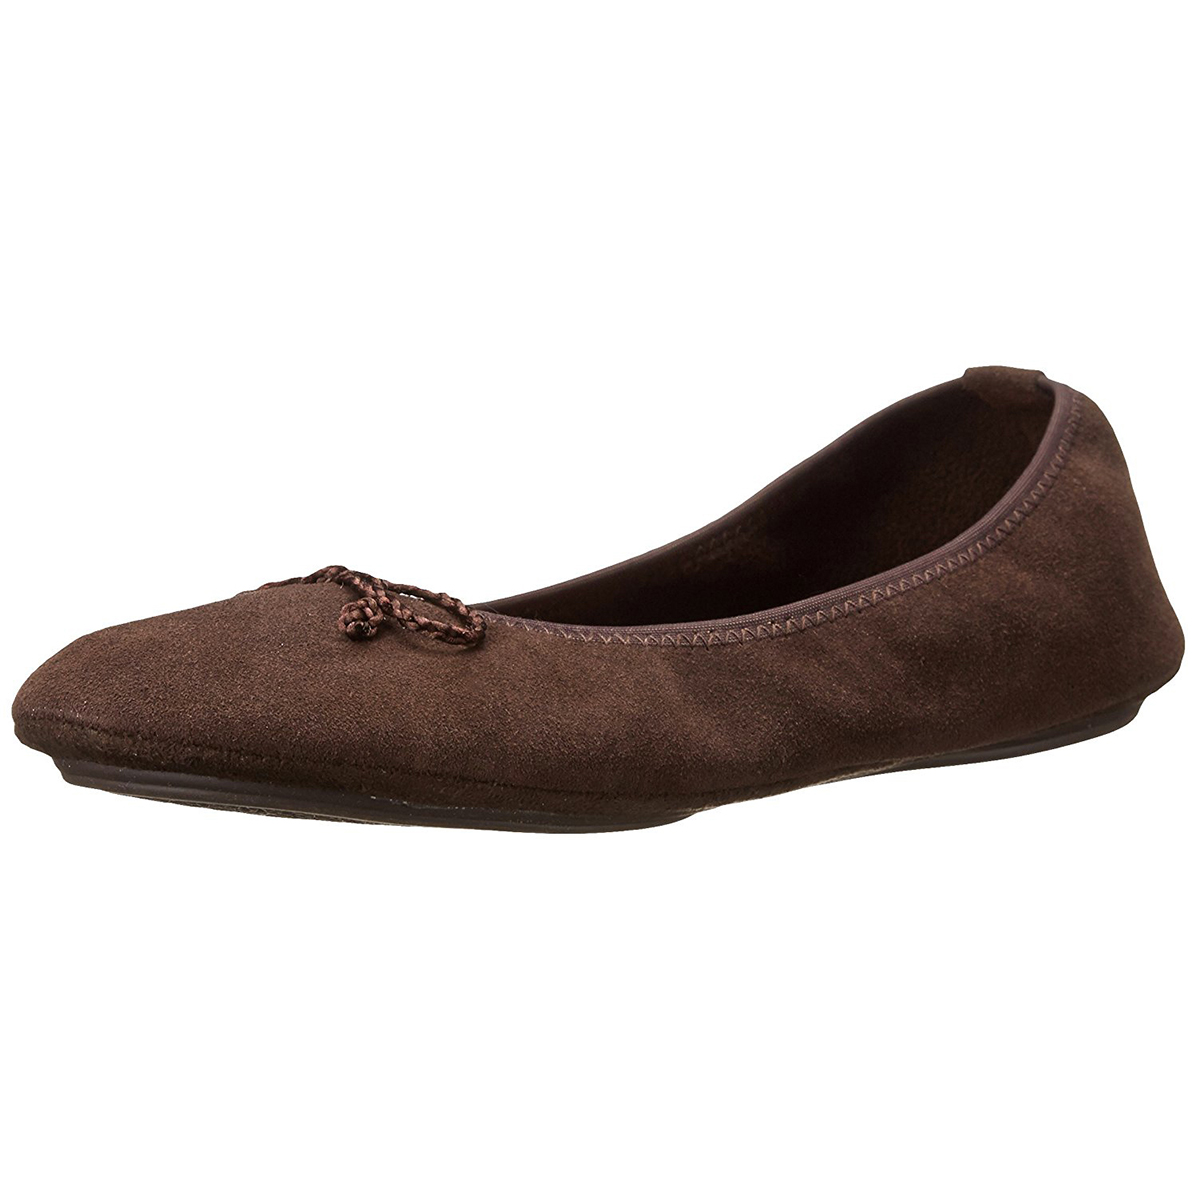 Hush Puppies Womens Shoes Size